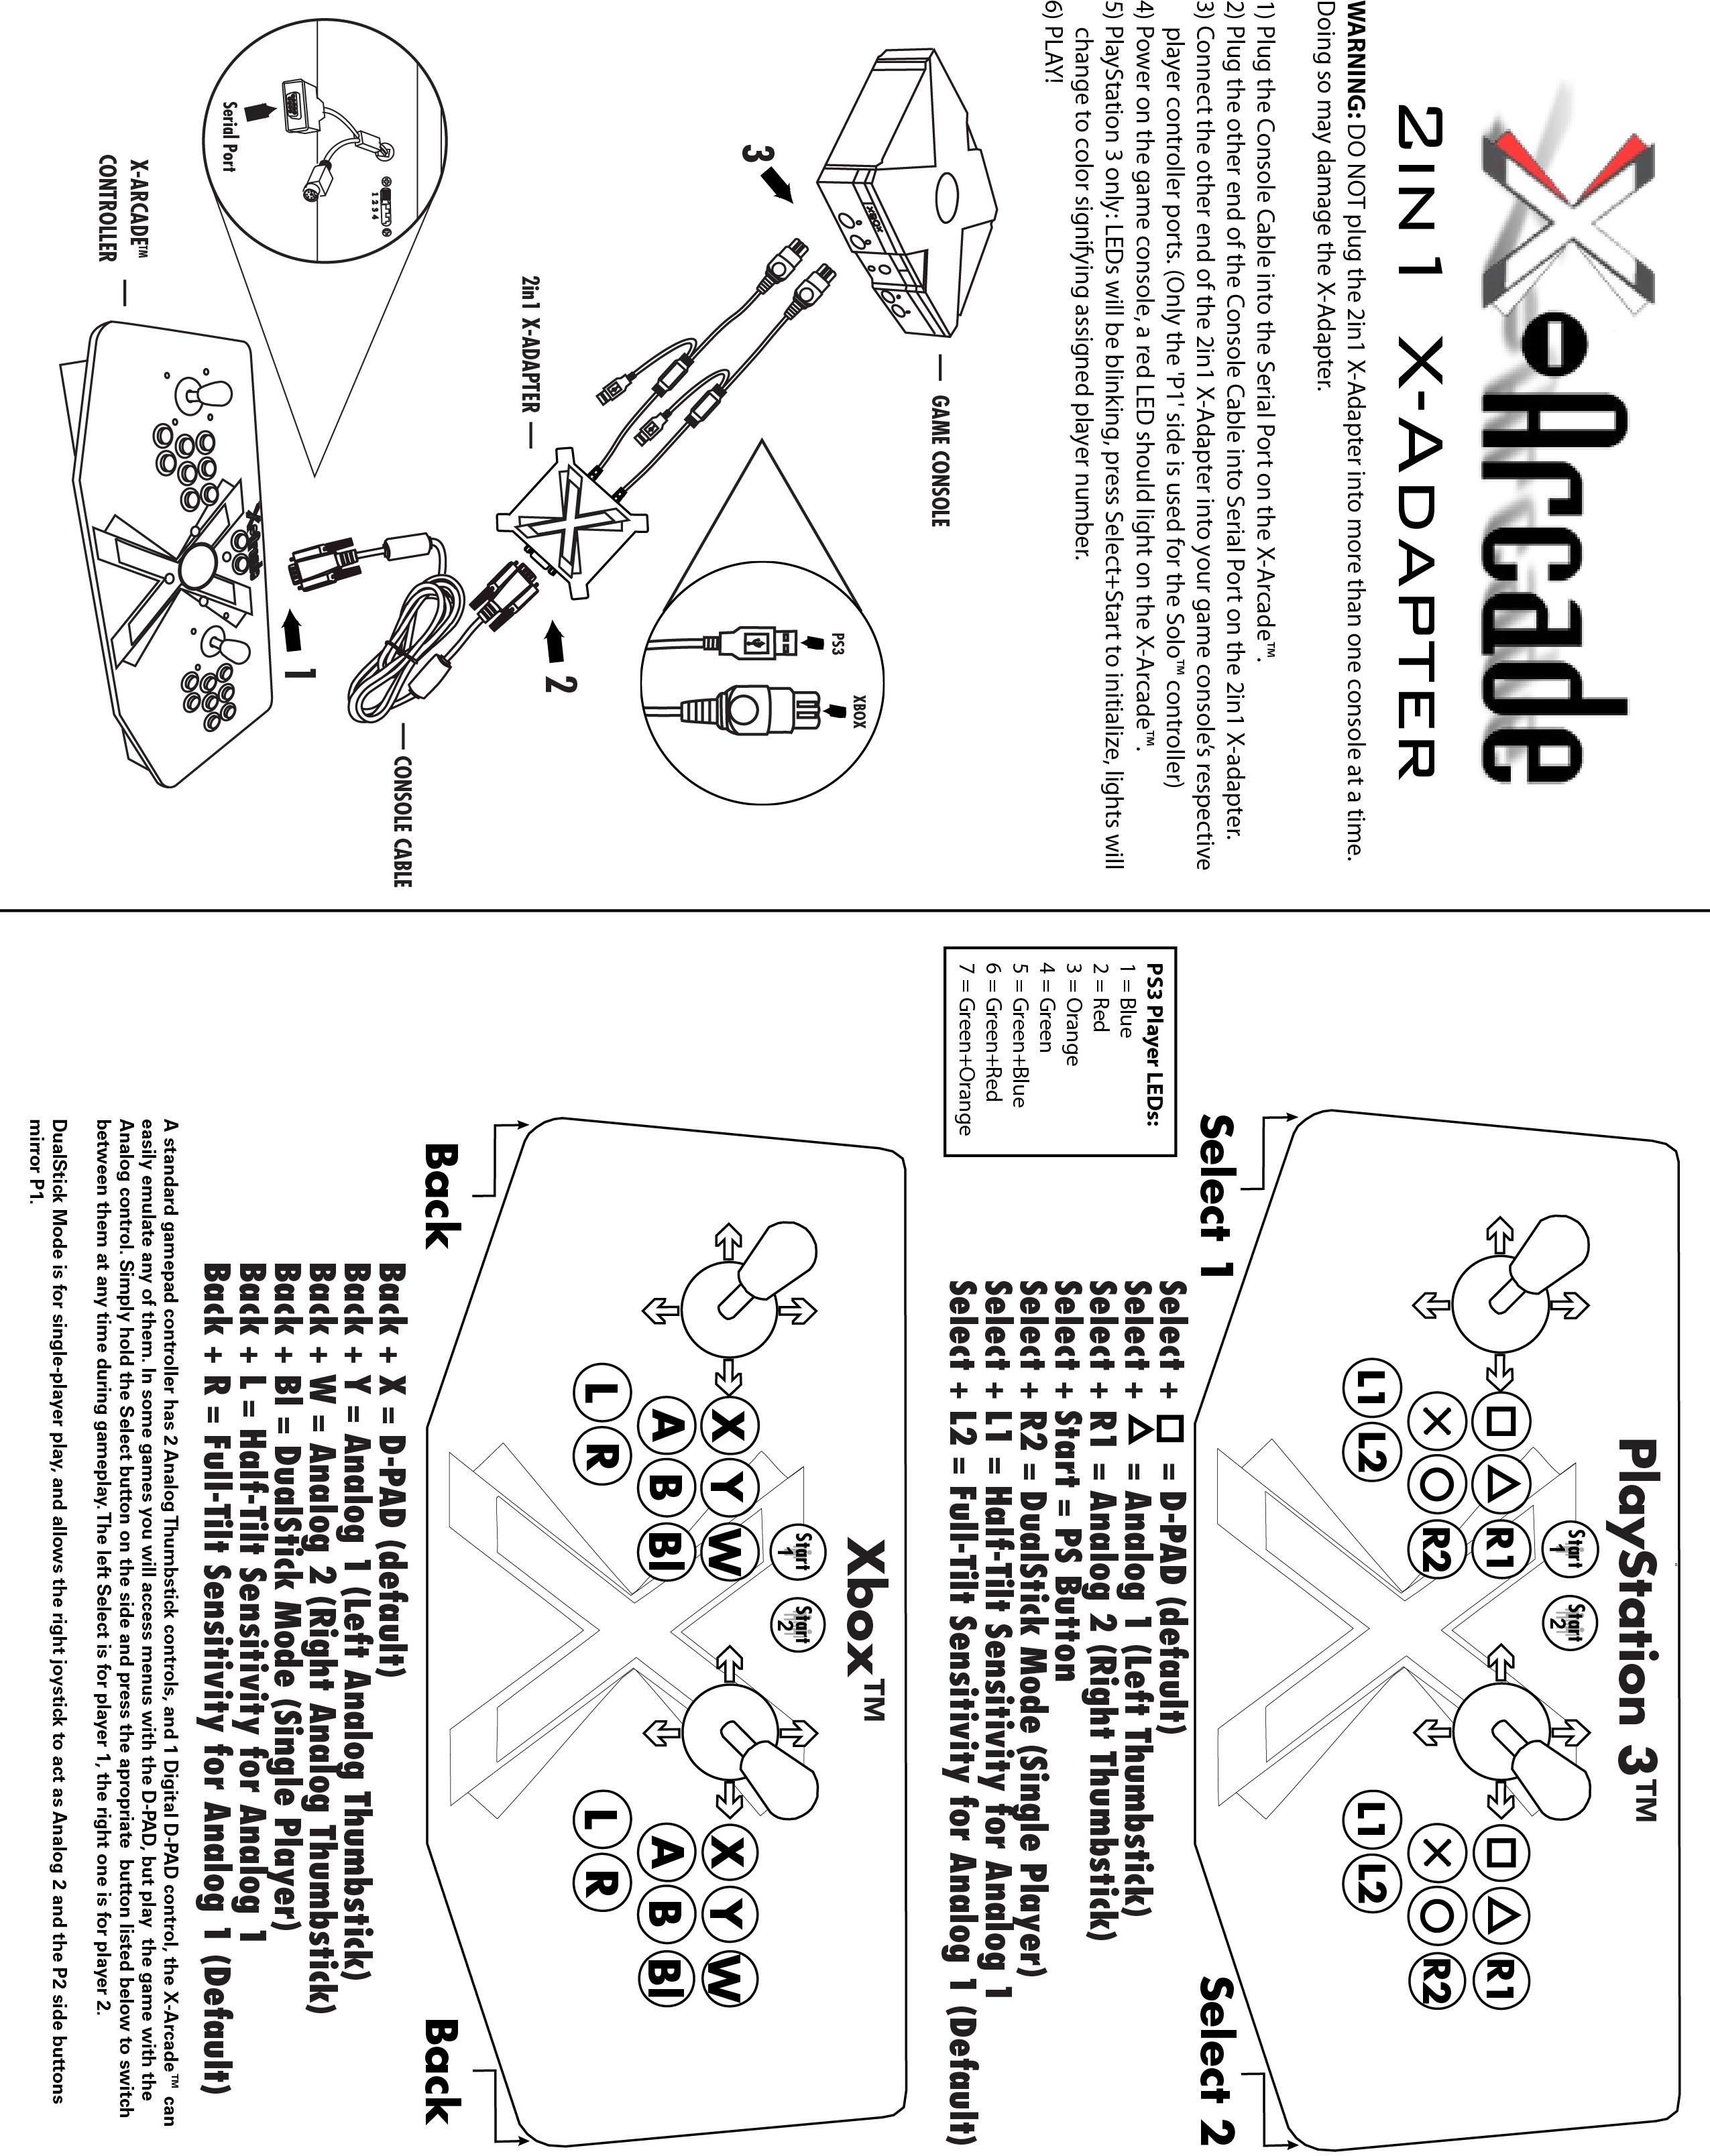 Ps2 Controller To Usb Wiring Diagram